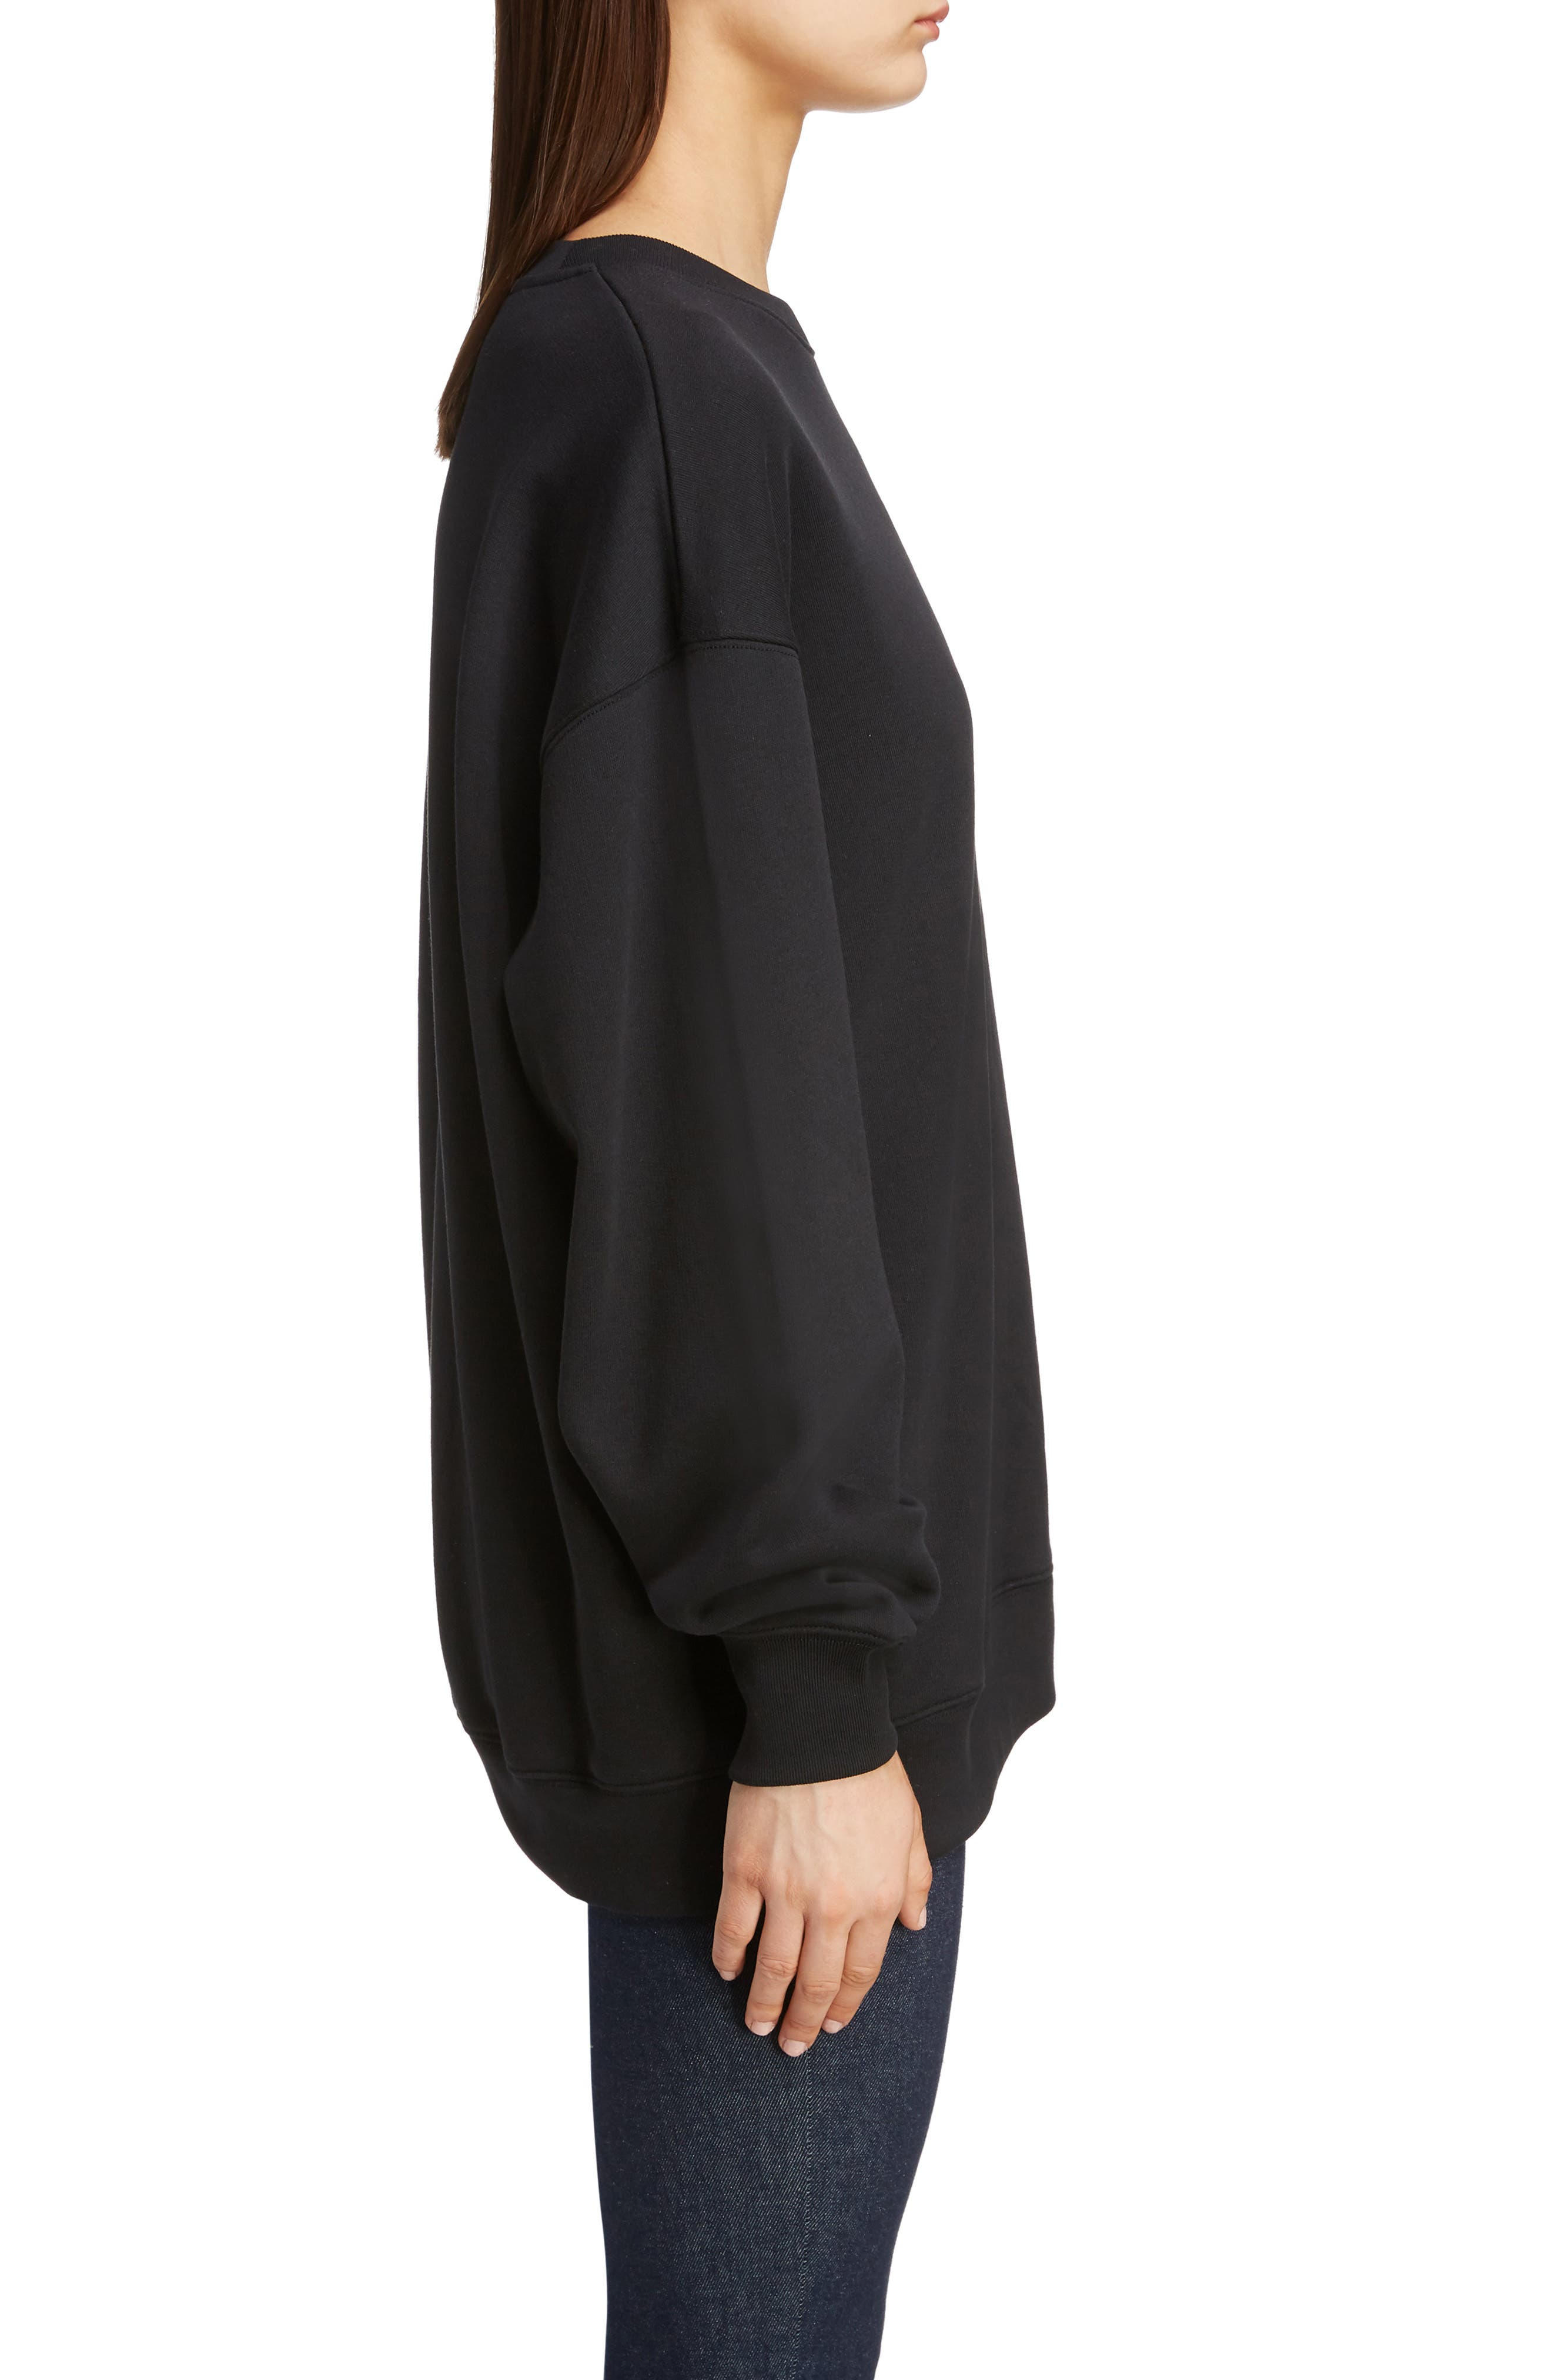 ACNE STUDIOS,                             Forba Face Sweatshirt,                             Alternate thumbnail 3, color,                             BLACK